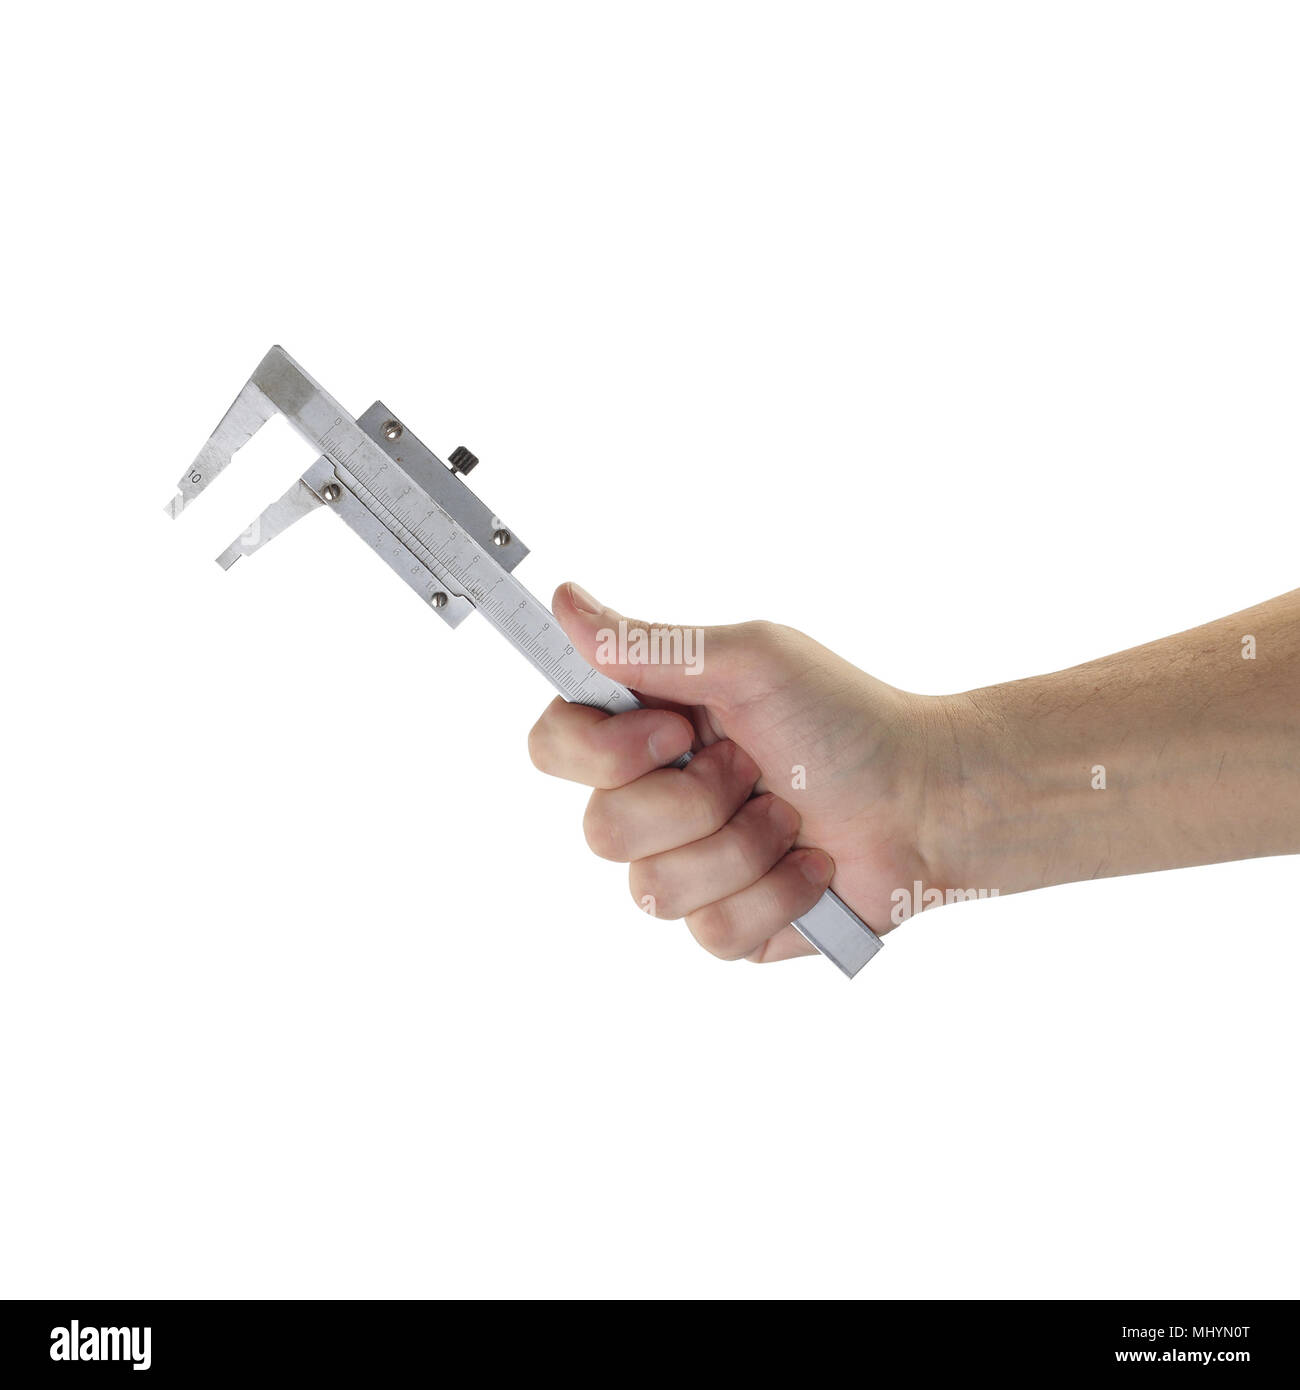 Objects tool hands action - Vernier Caliper Measuring Gauge worker hand isolated white background. - Stock Image